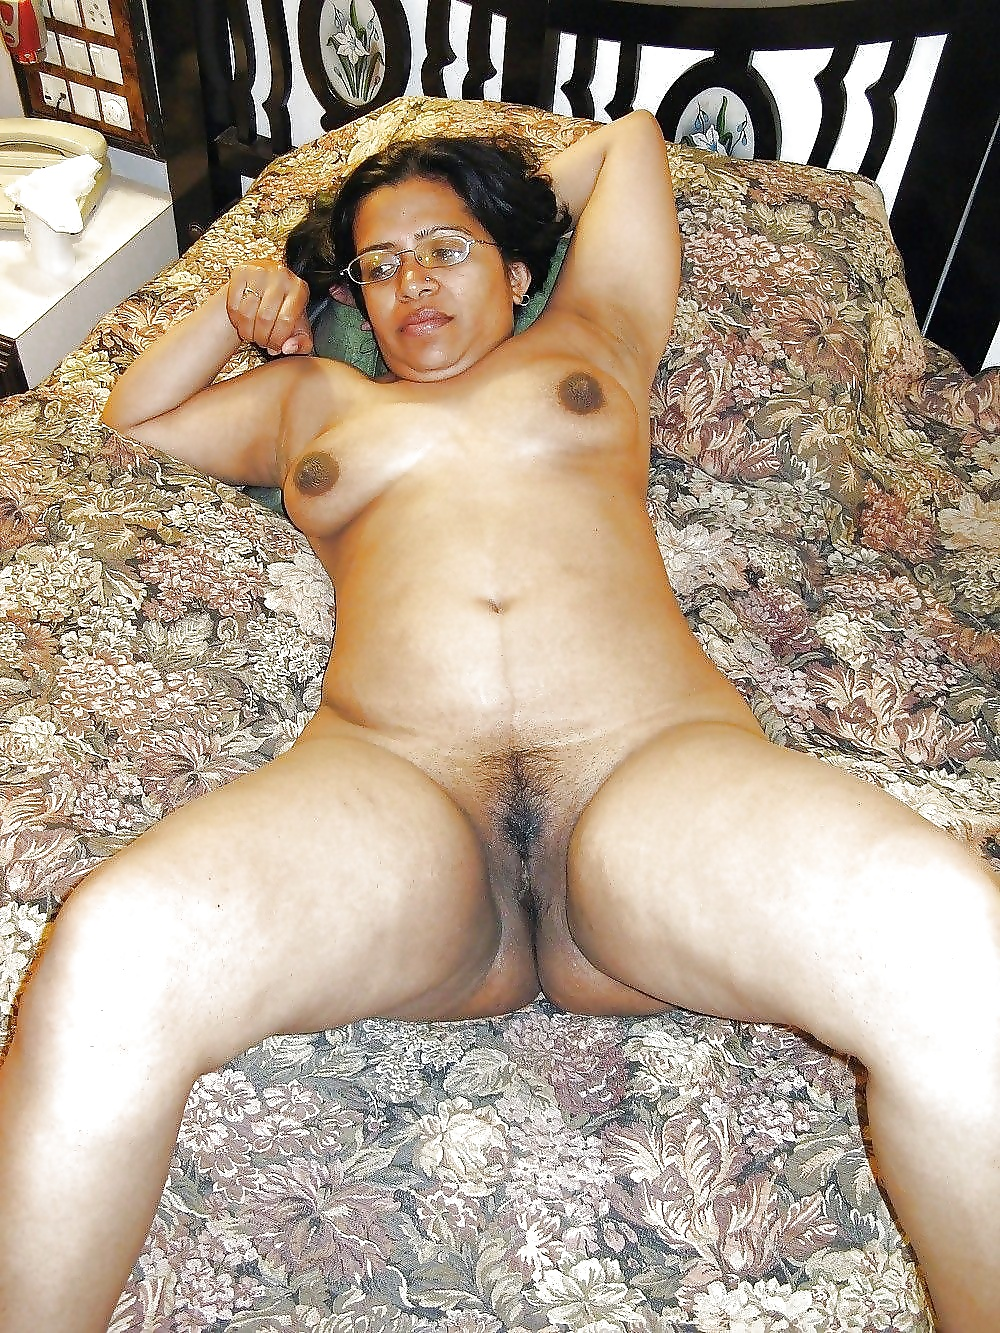 Indian old woman butt nudes pic — photo 1